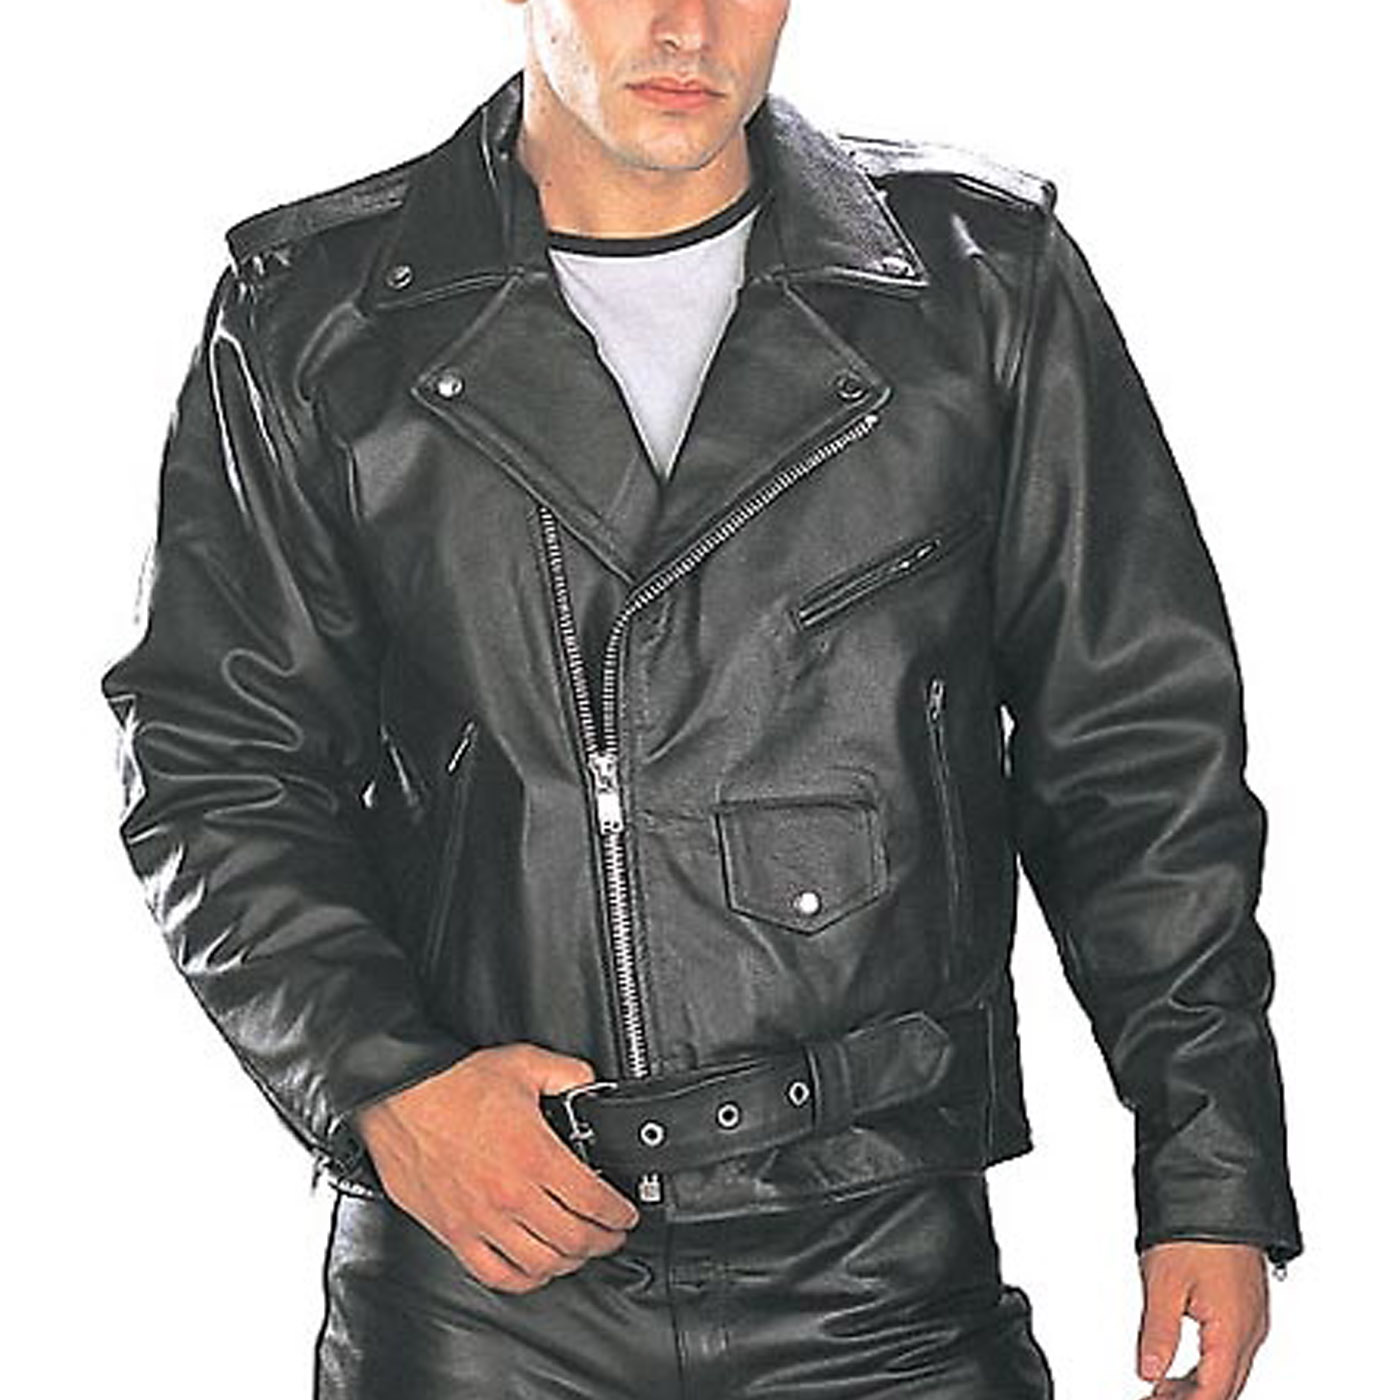 Black-TOP-GRADE-Leather-Motorcycle-Biker-Jacket-1.